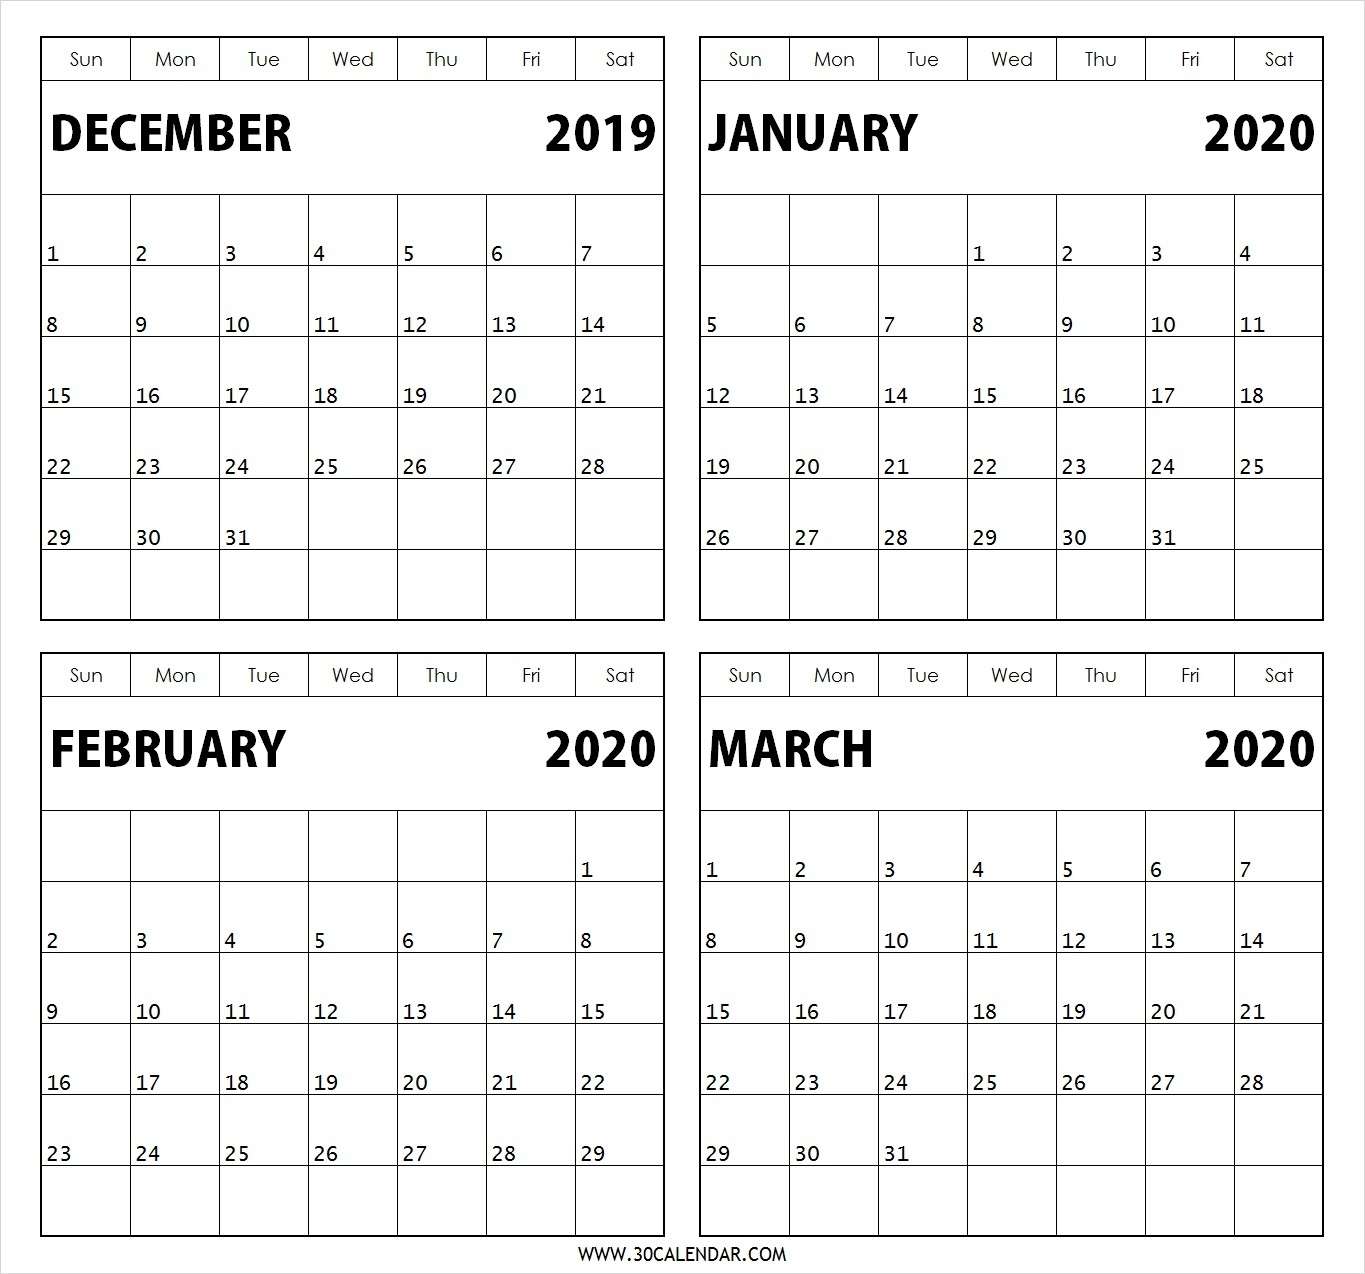 Jan 2019 To March 2020 Calendar | Calendar Template Information with regard to February And March 2020